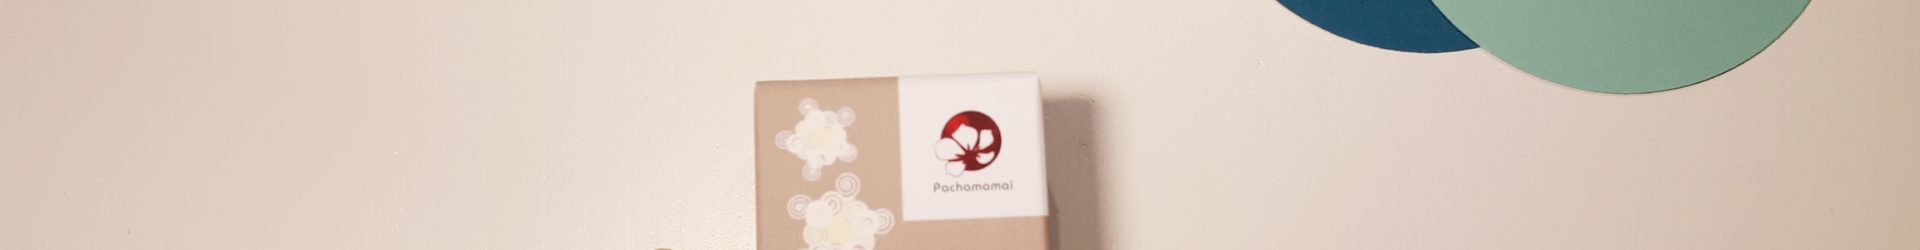 Pachamamaï – Déodorant solide Cocoon (25g)